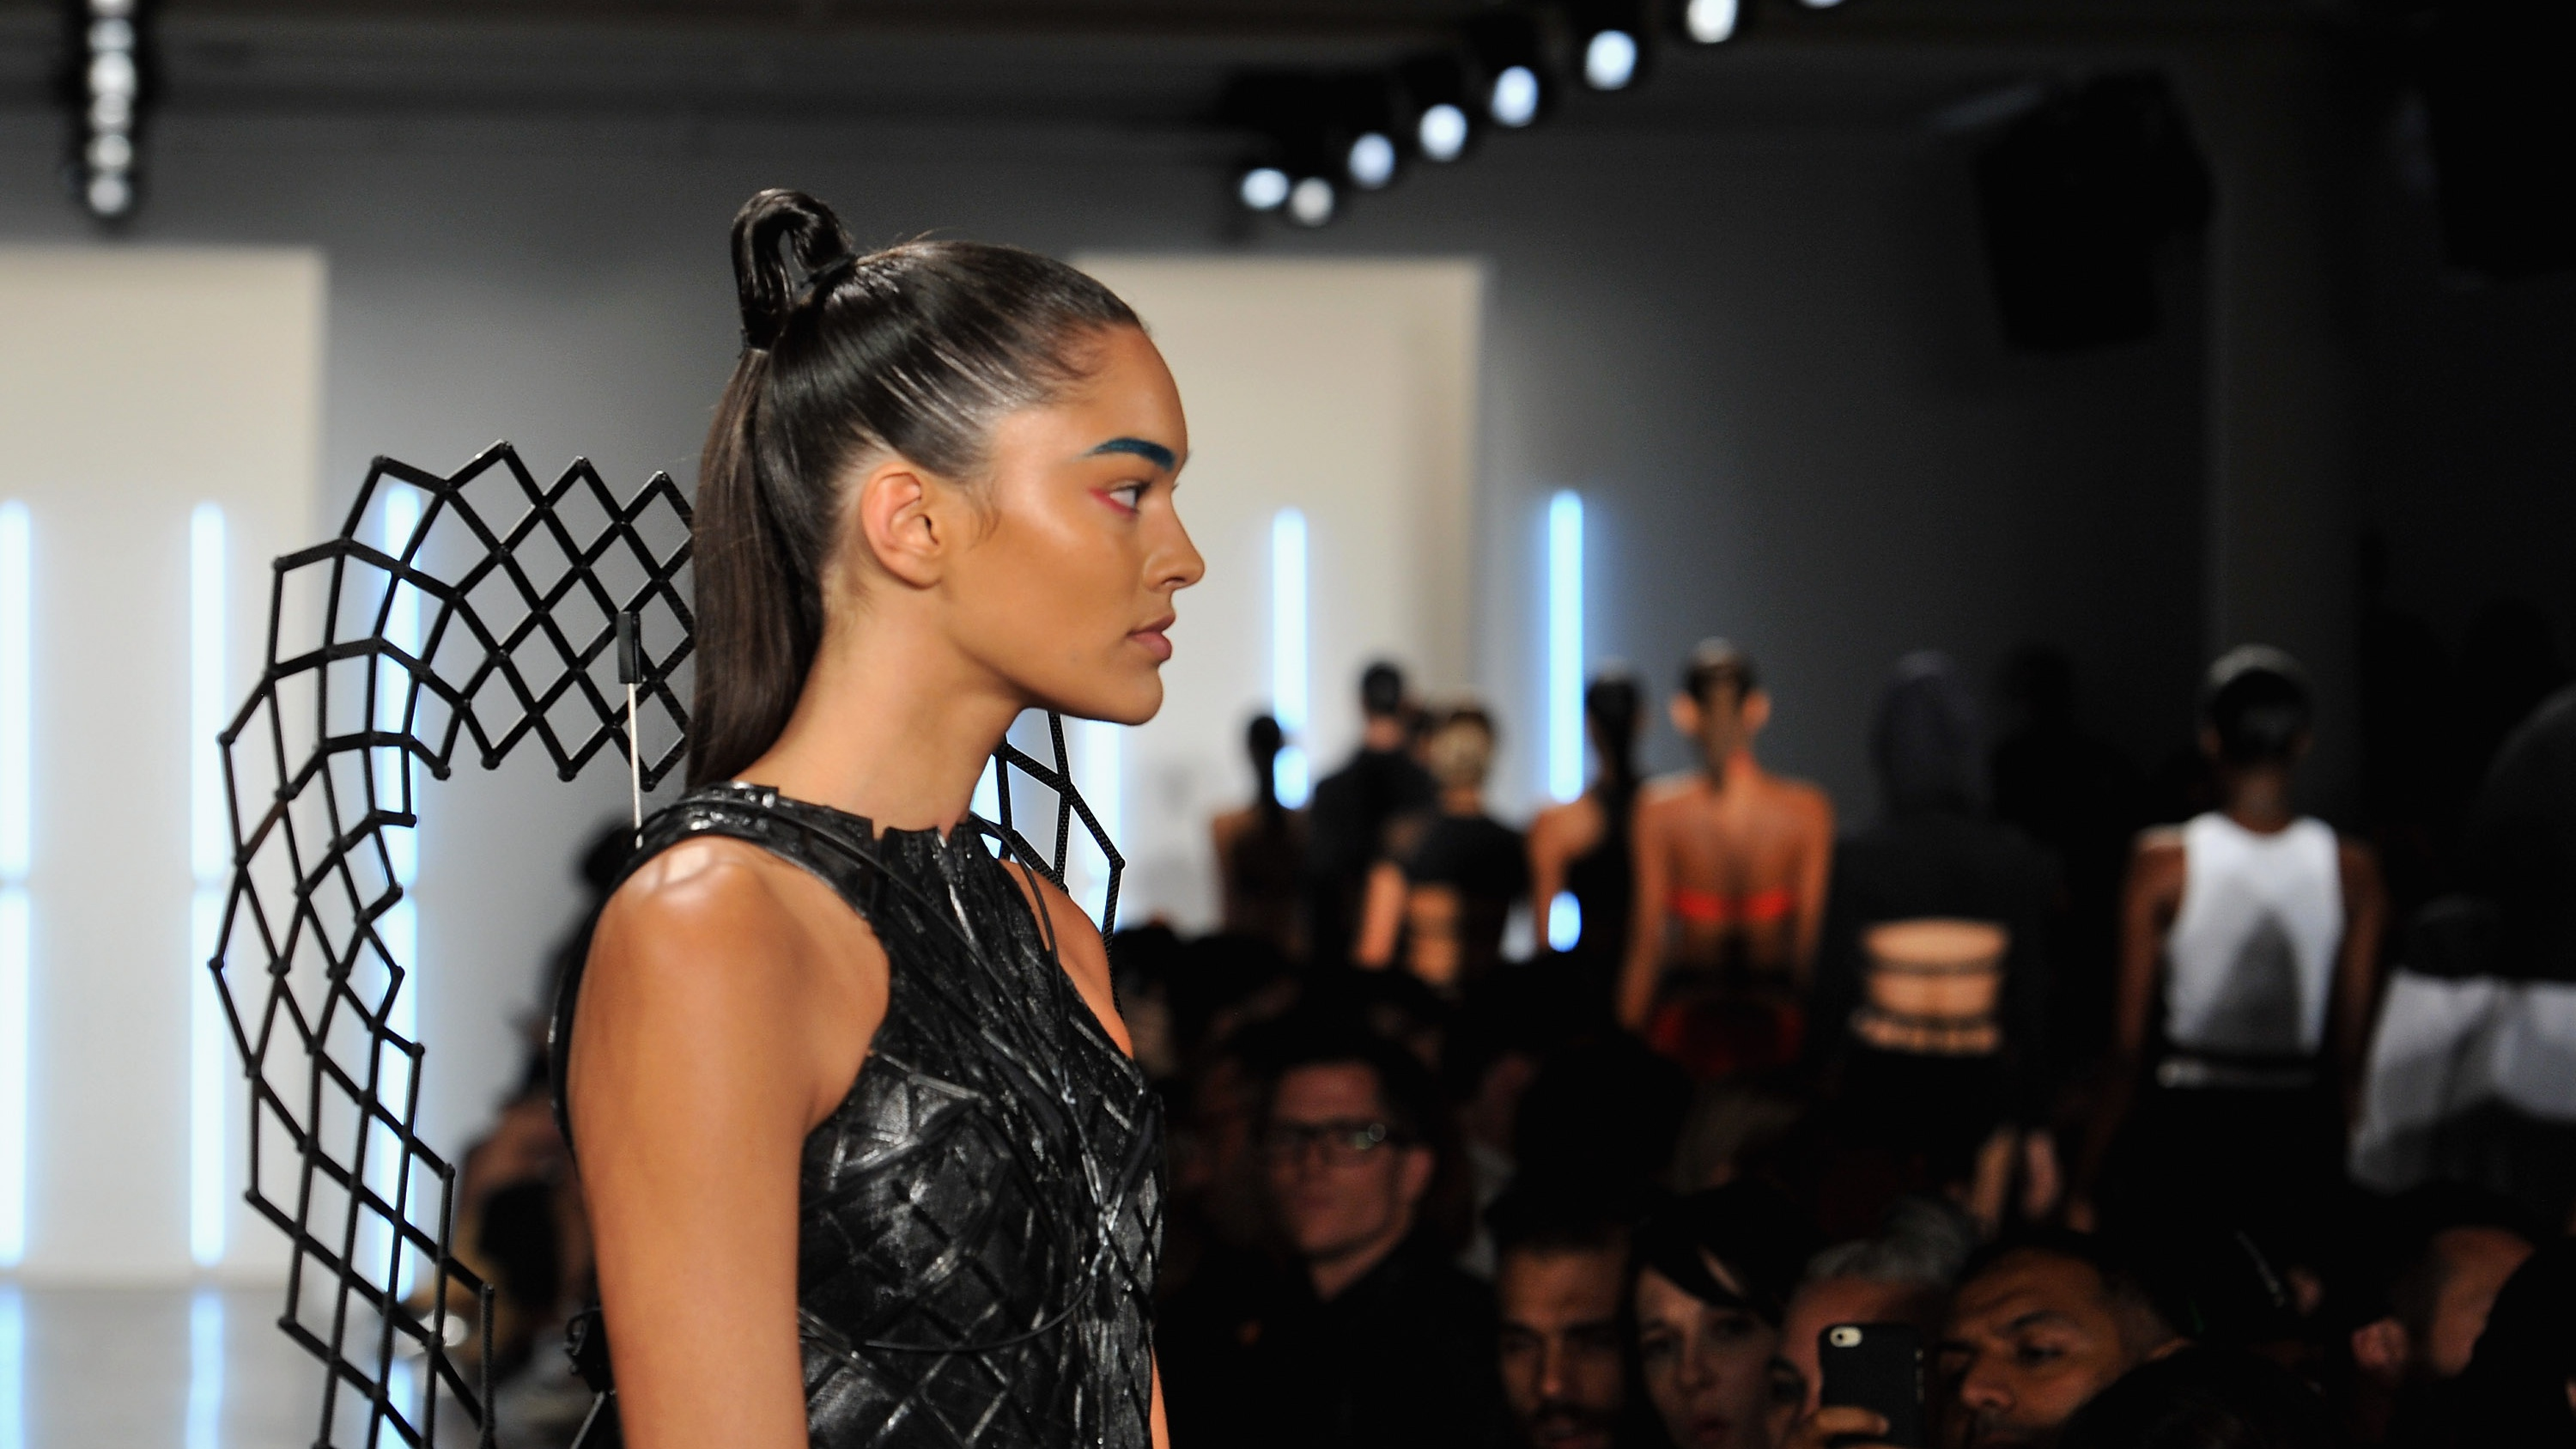 Models walk down the runway during the Chromat fashion show during Spring 2016 New York Fashion Week at Milk Studios on September 11, 2015 in New York City.